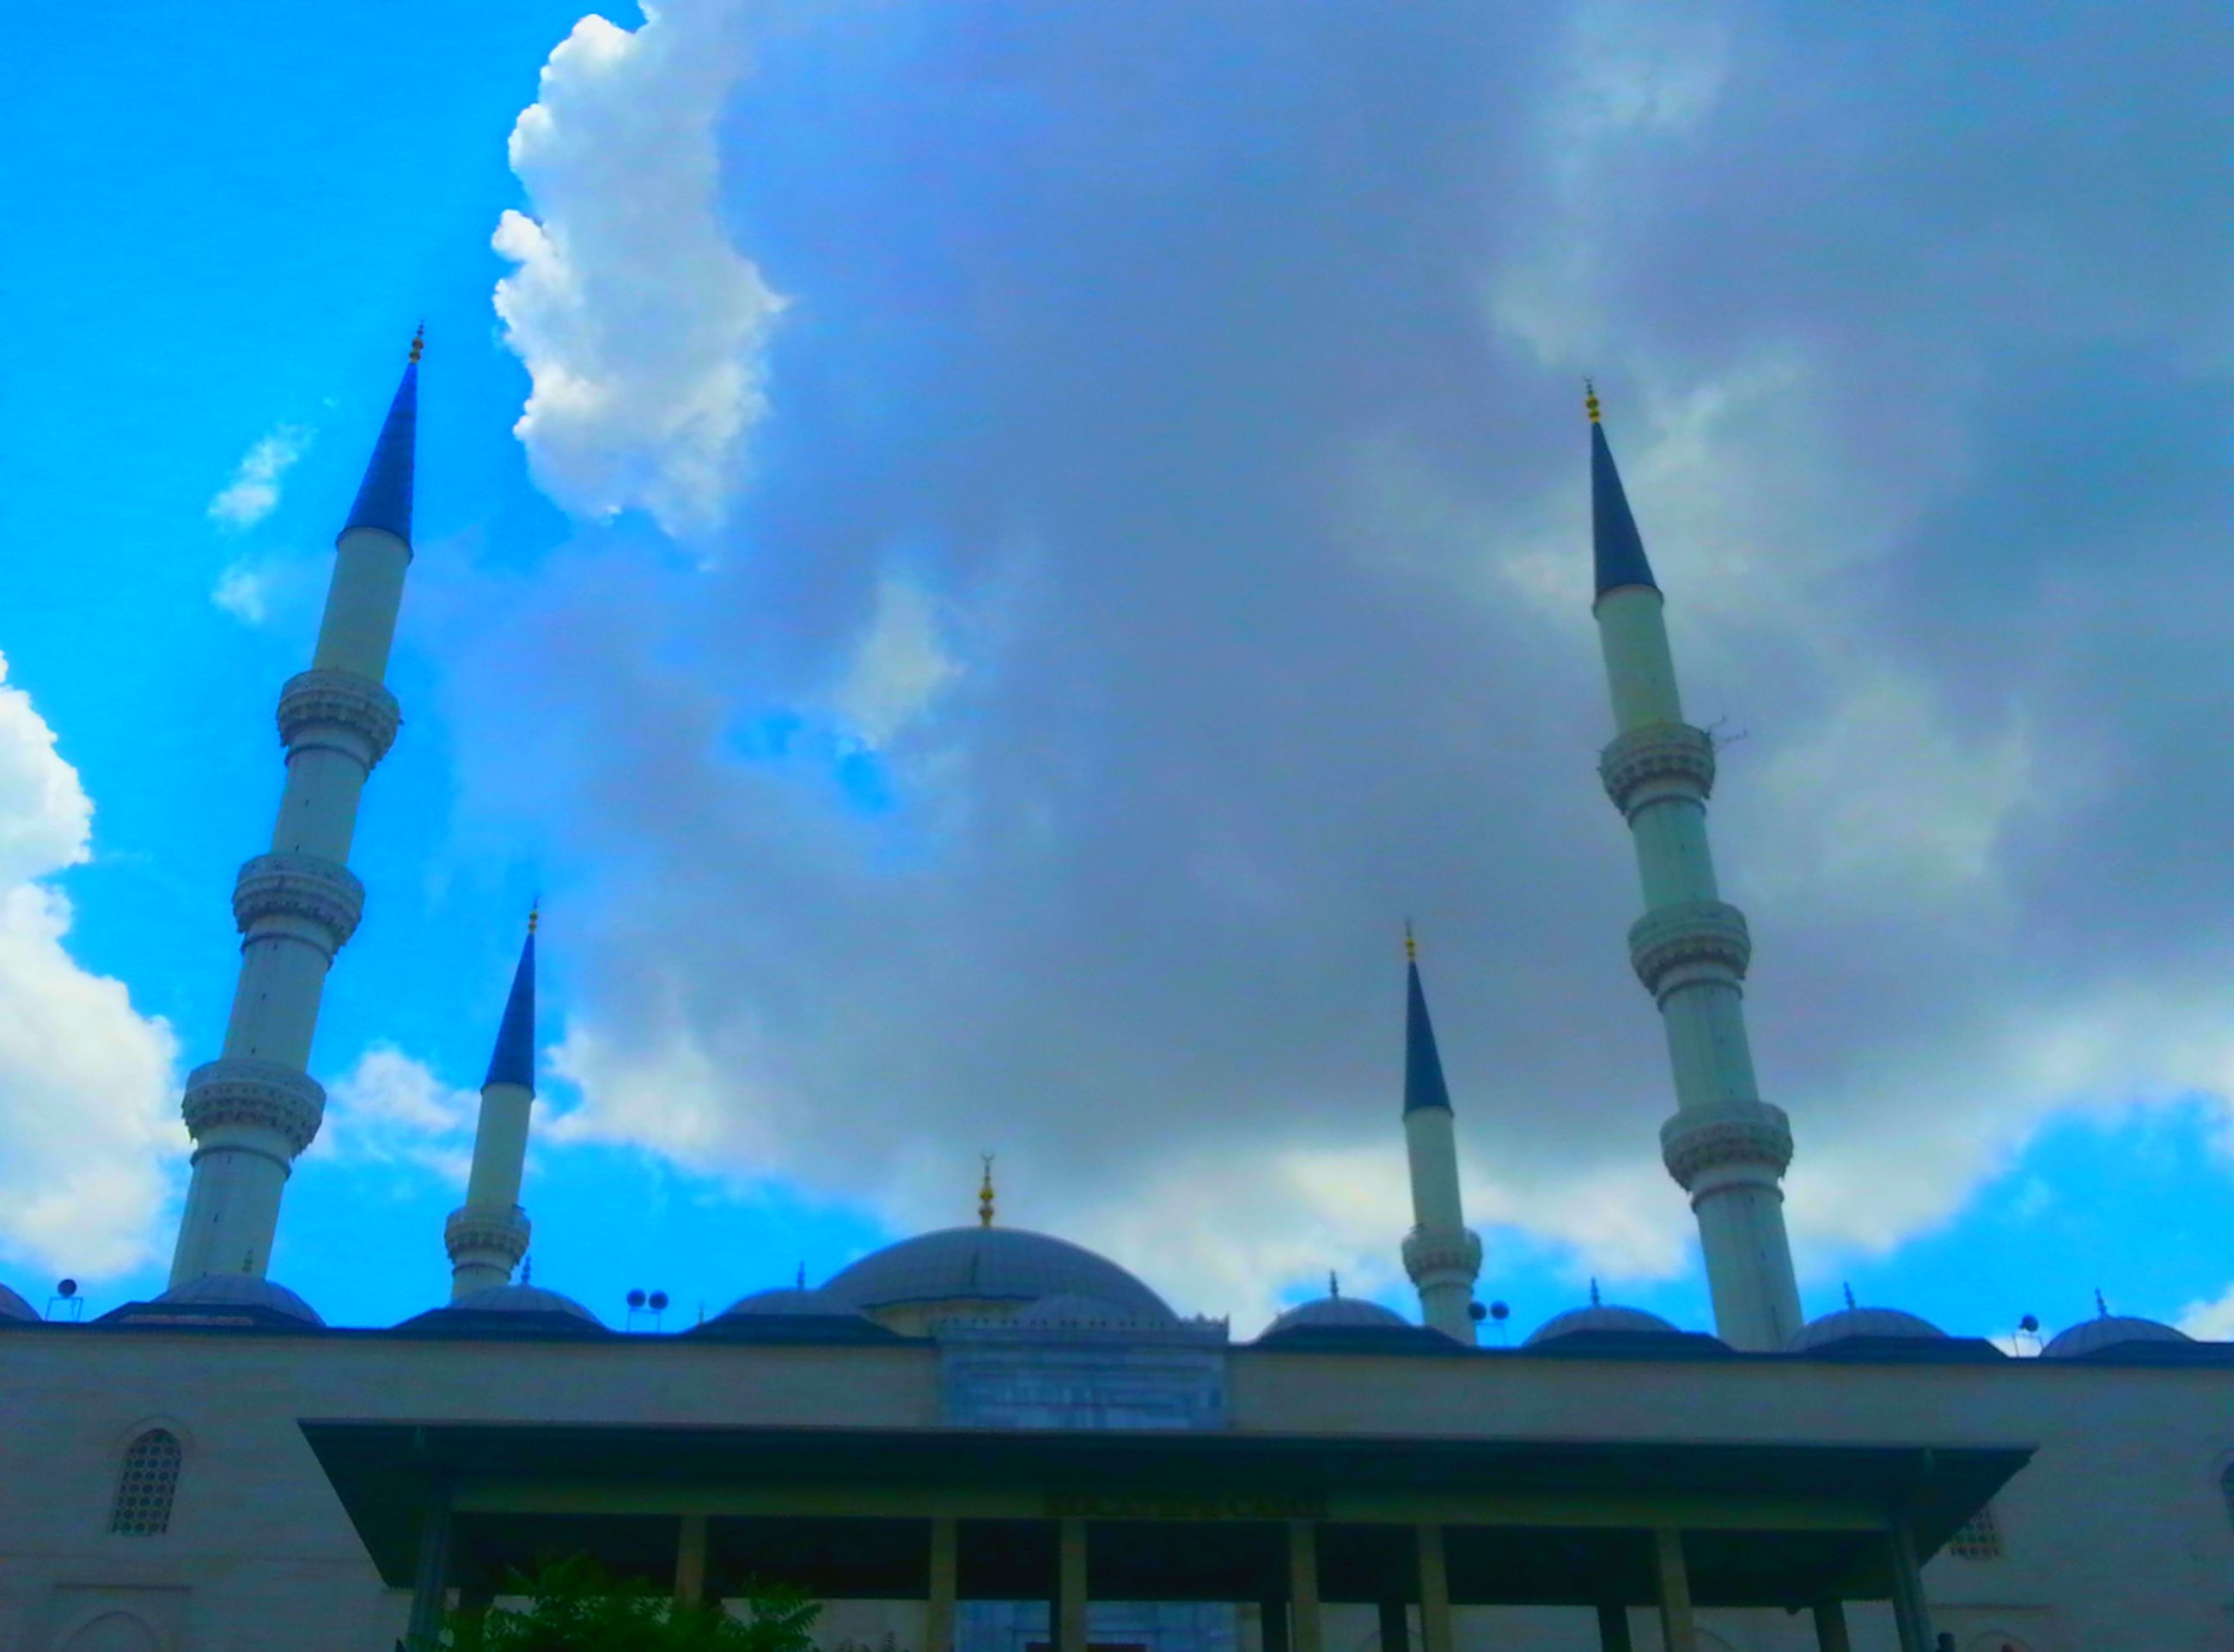 architecture, building exterior, built structure, blue, low angle view, sky, cloud - sky, cloud, outdoors, day, no people, tower, religion, sunlight, city, cloudy, high section, building, place of worship, mosque